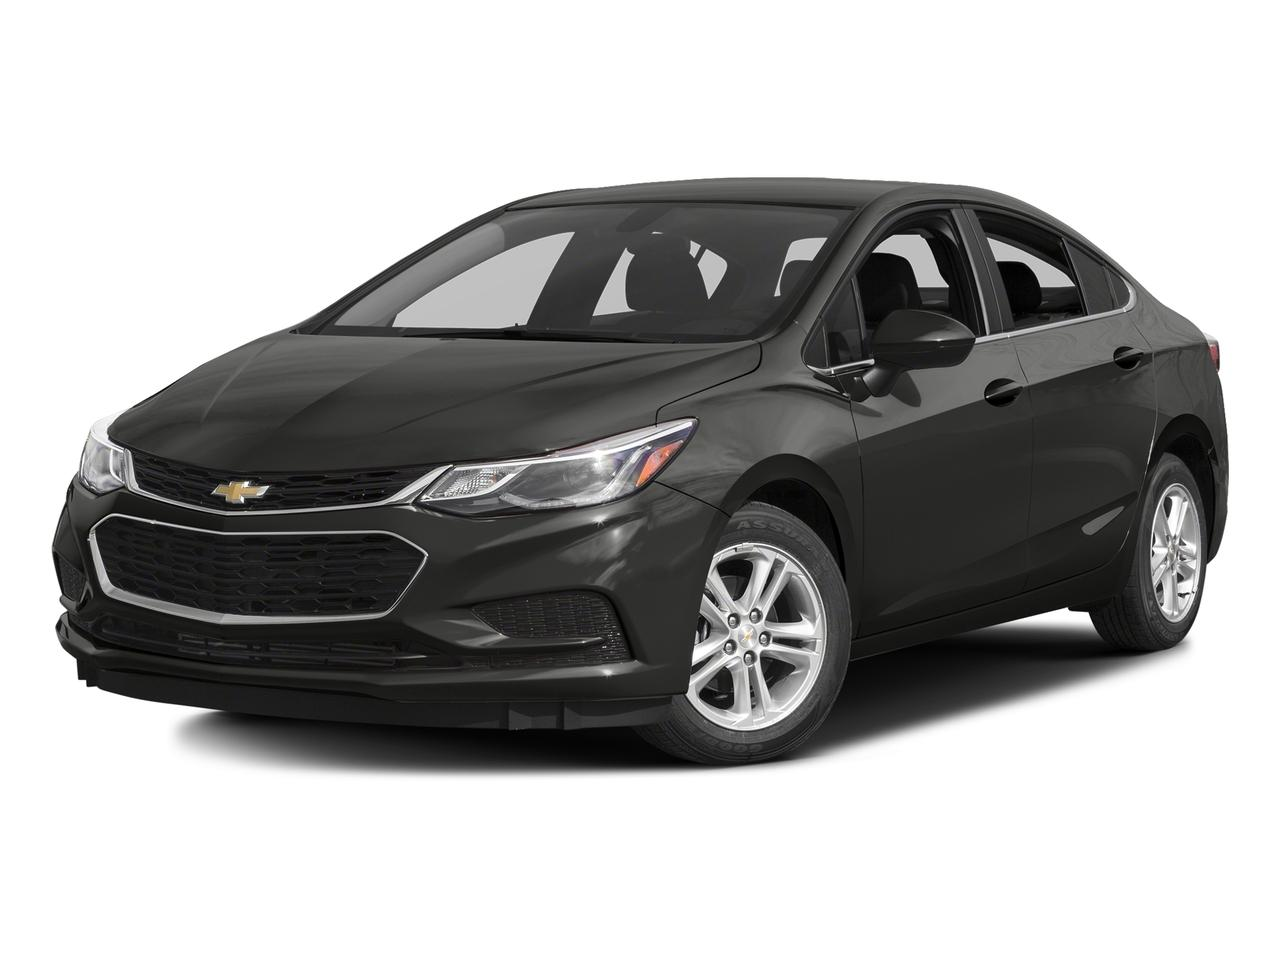 2016 Chevrolet Cruze Vehicle Photo in VINCENNES, IN 47591-5519